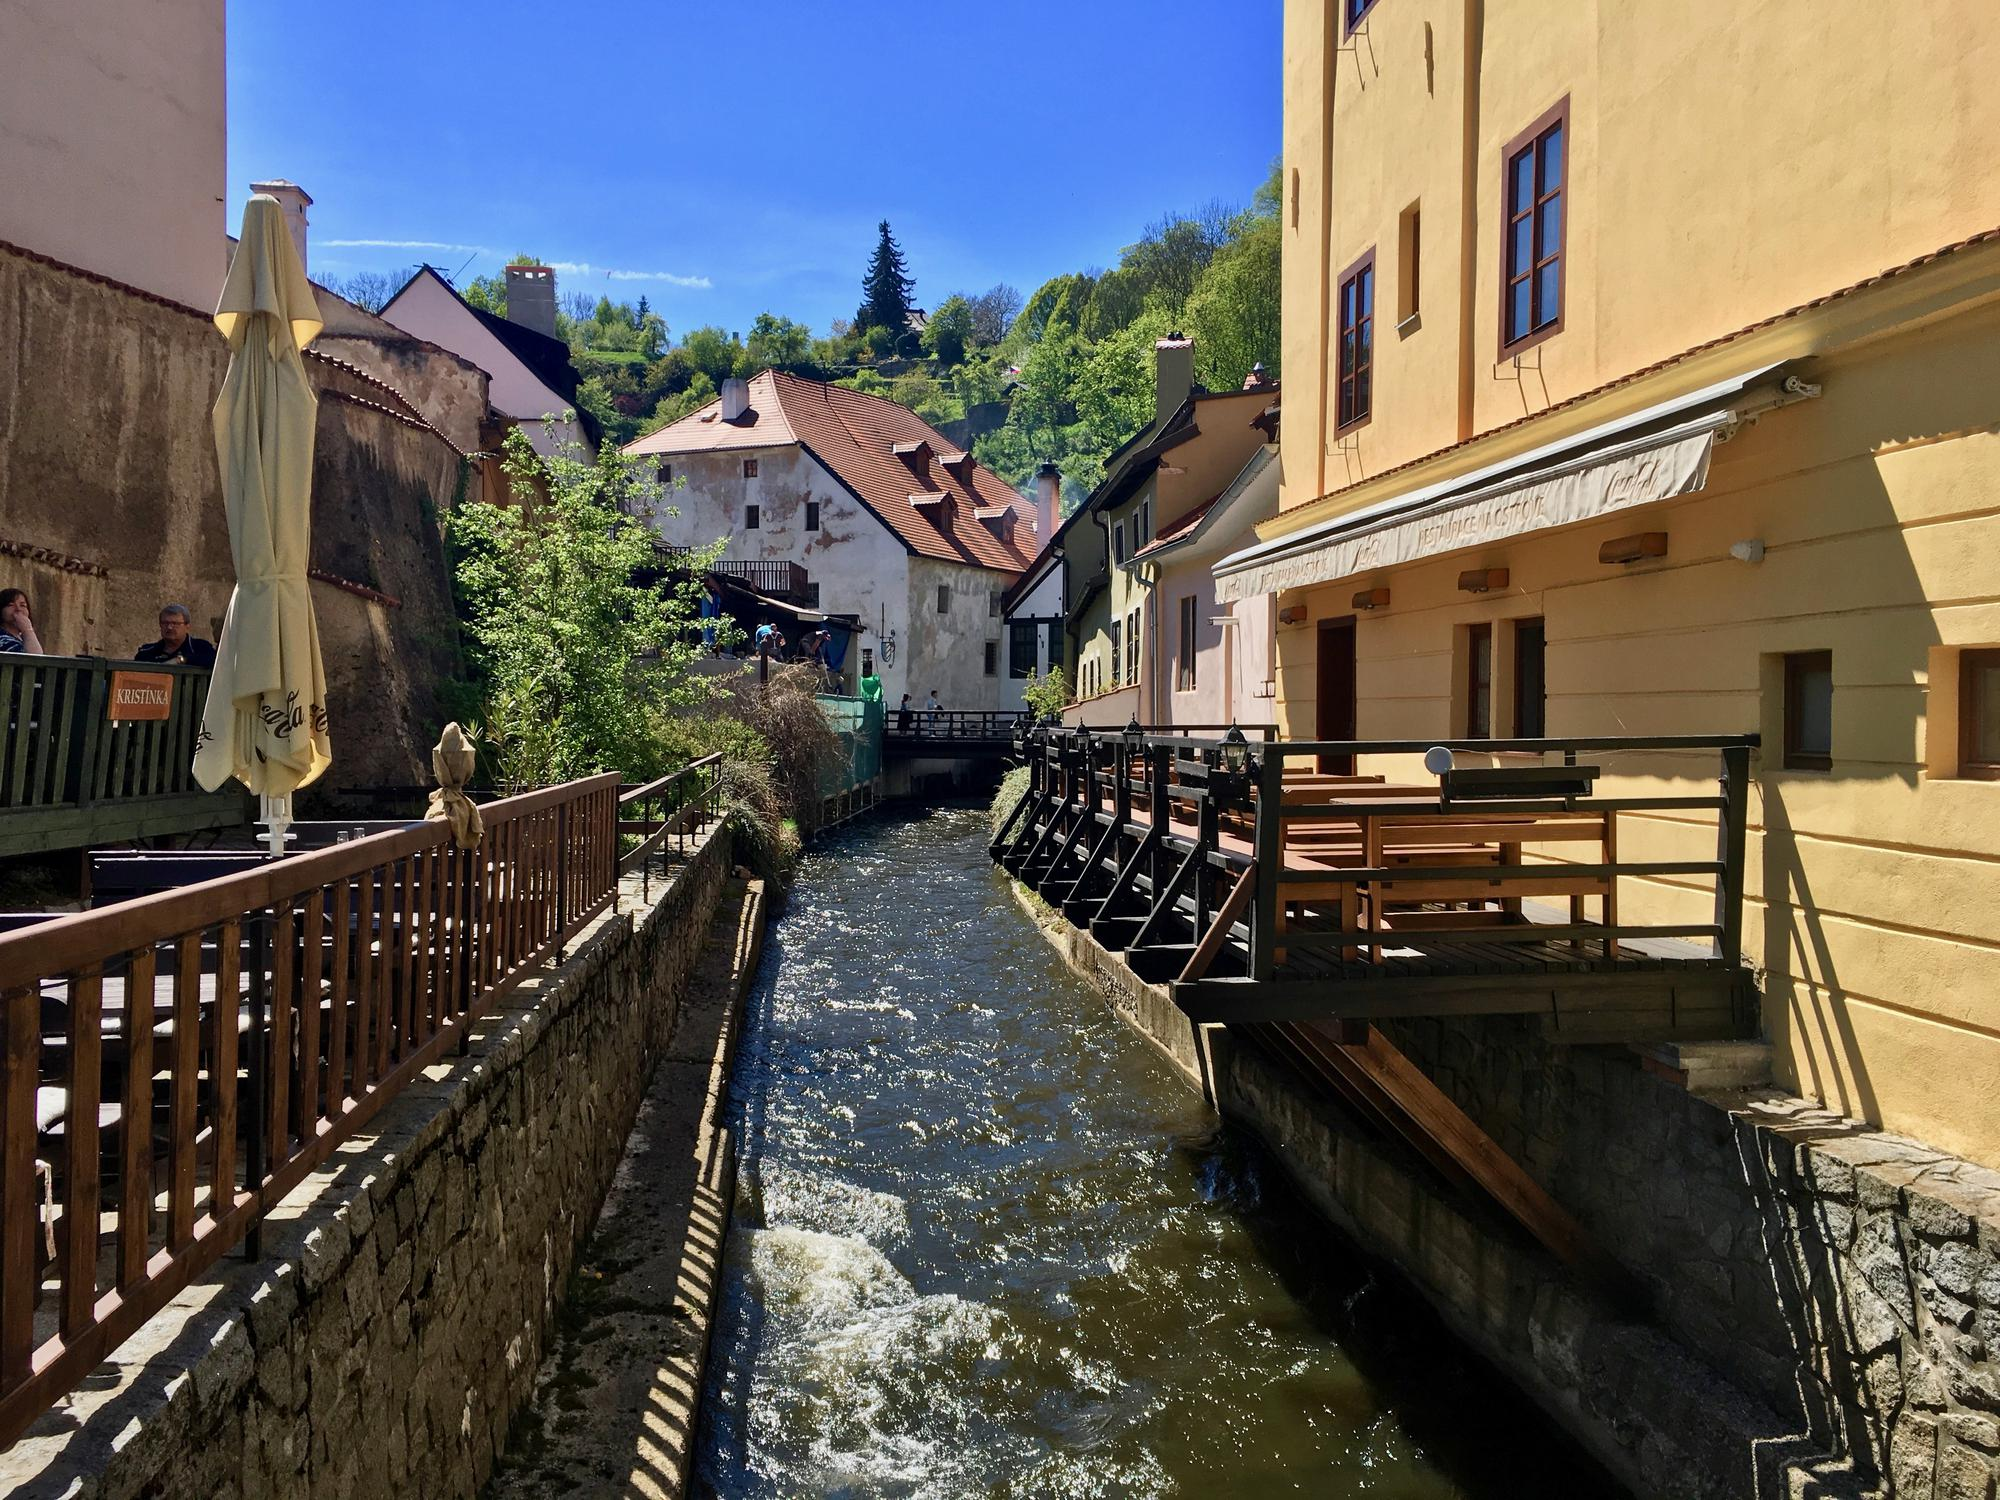 🇨🇿 Cesky Krumlov, Czech Republic, may 2017.